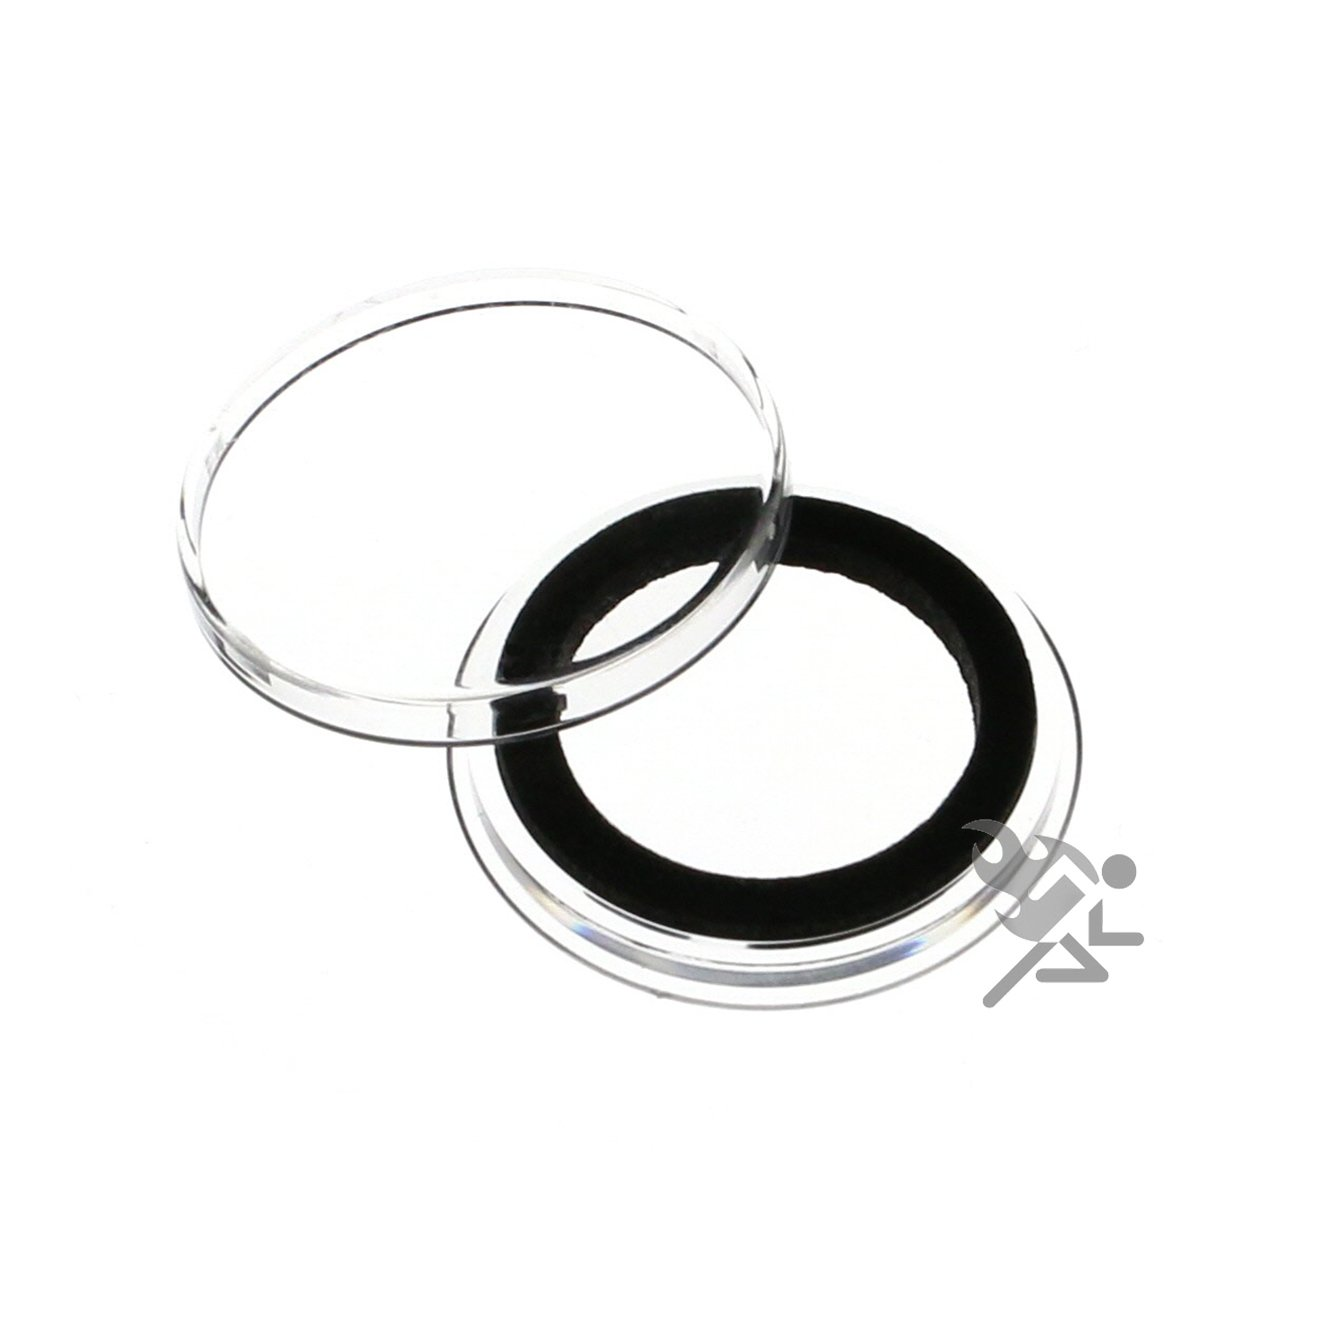 100 Air-Tite 24mm Black Ring Coin Holder Capsules for Quarters